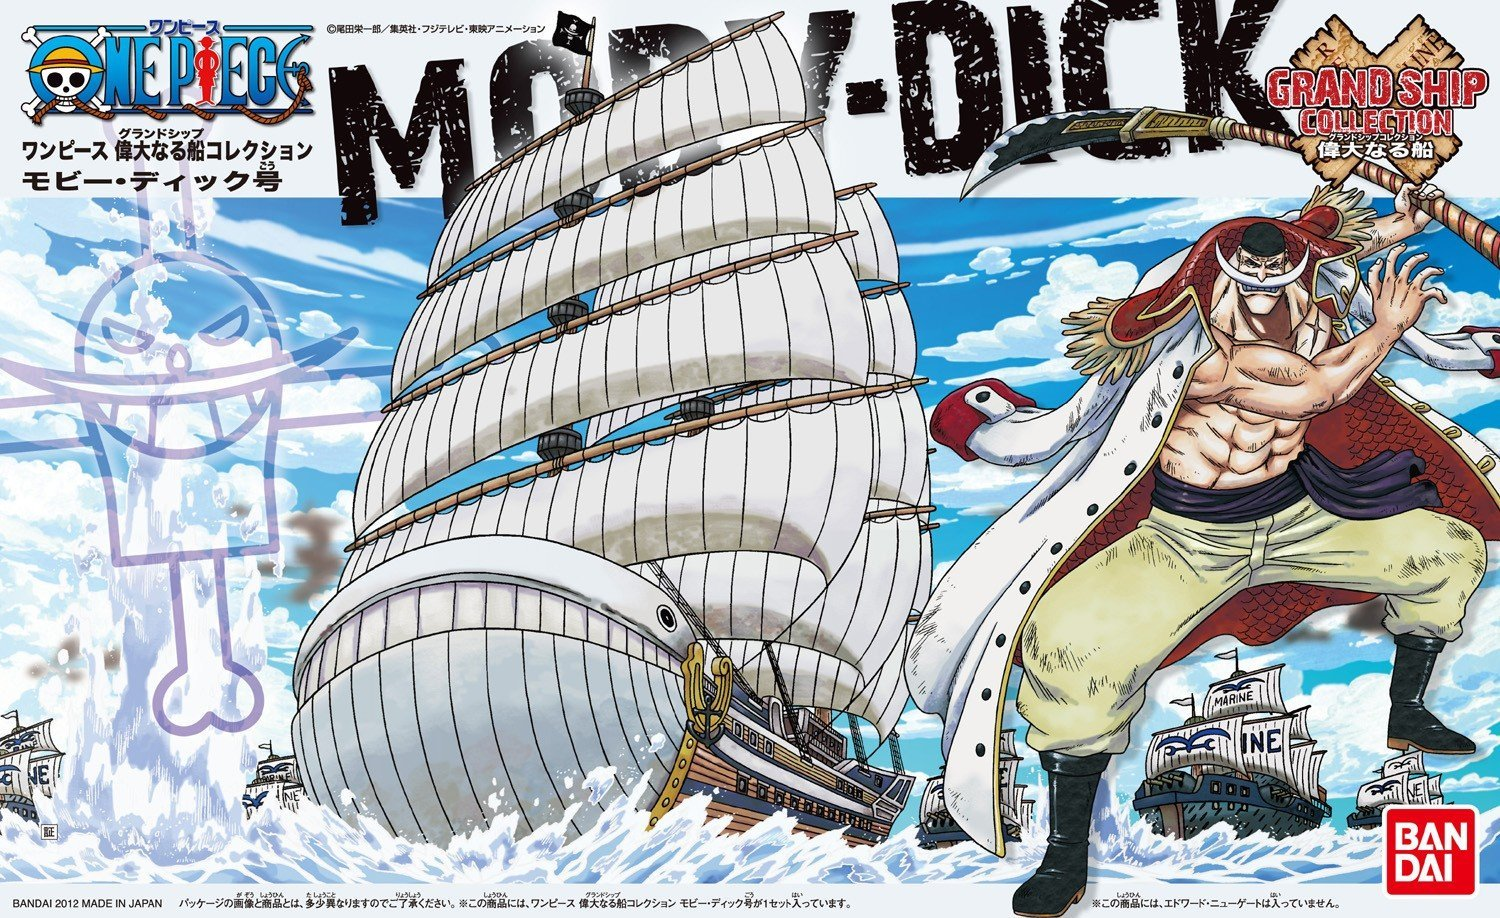 Moby Dick: Grand Ship Collection